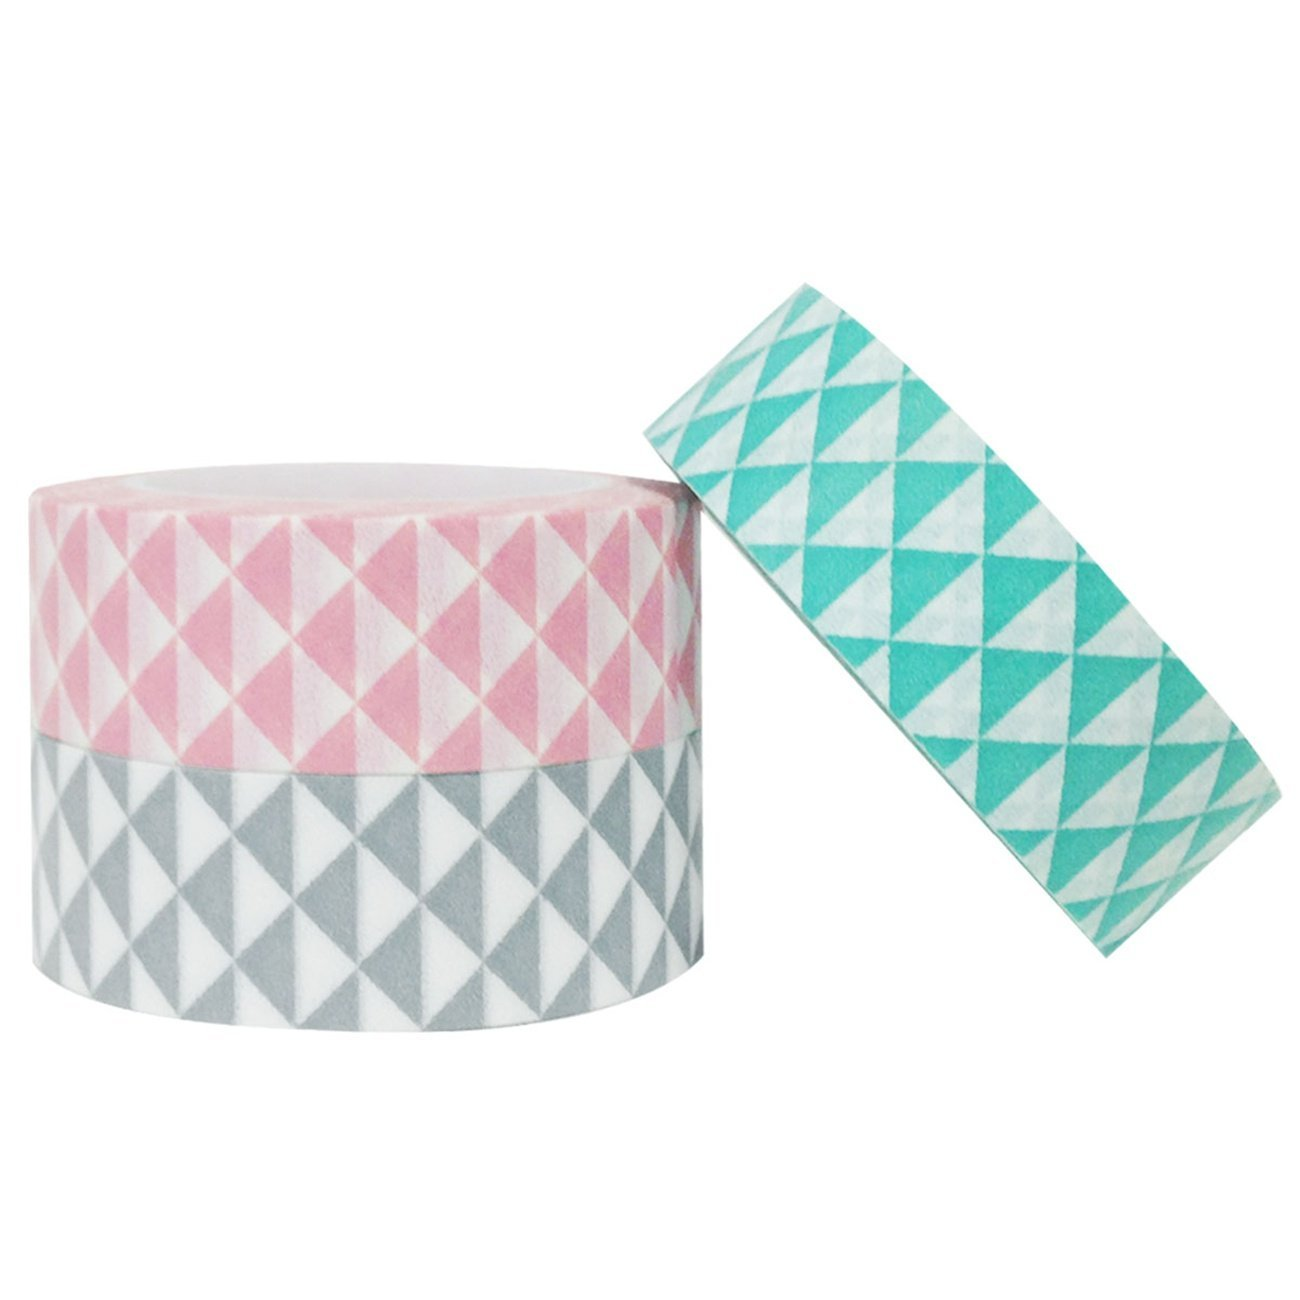 Wrapables Vector Triangles Japanese Washi Masking Tape (set of 3)